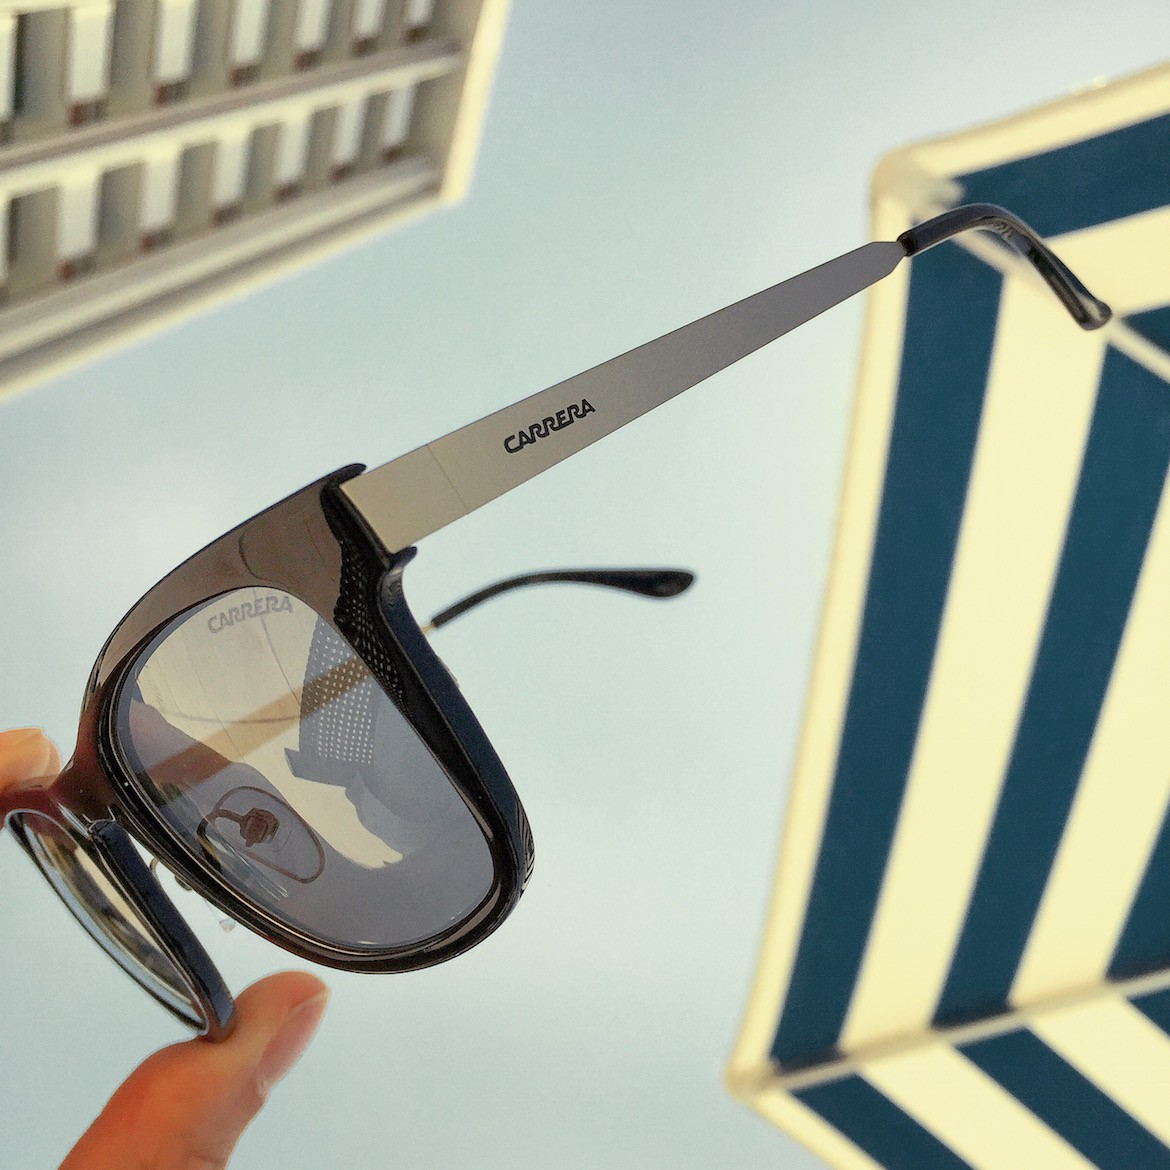 Fine contemporary design & strong eye protection by Carrera (Safilo).